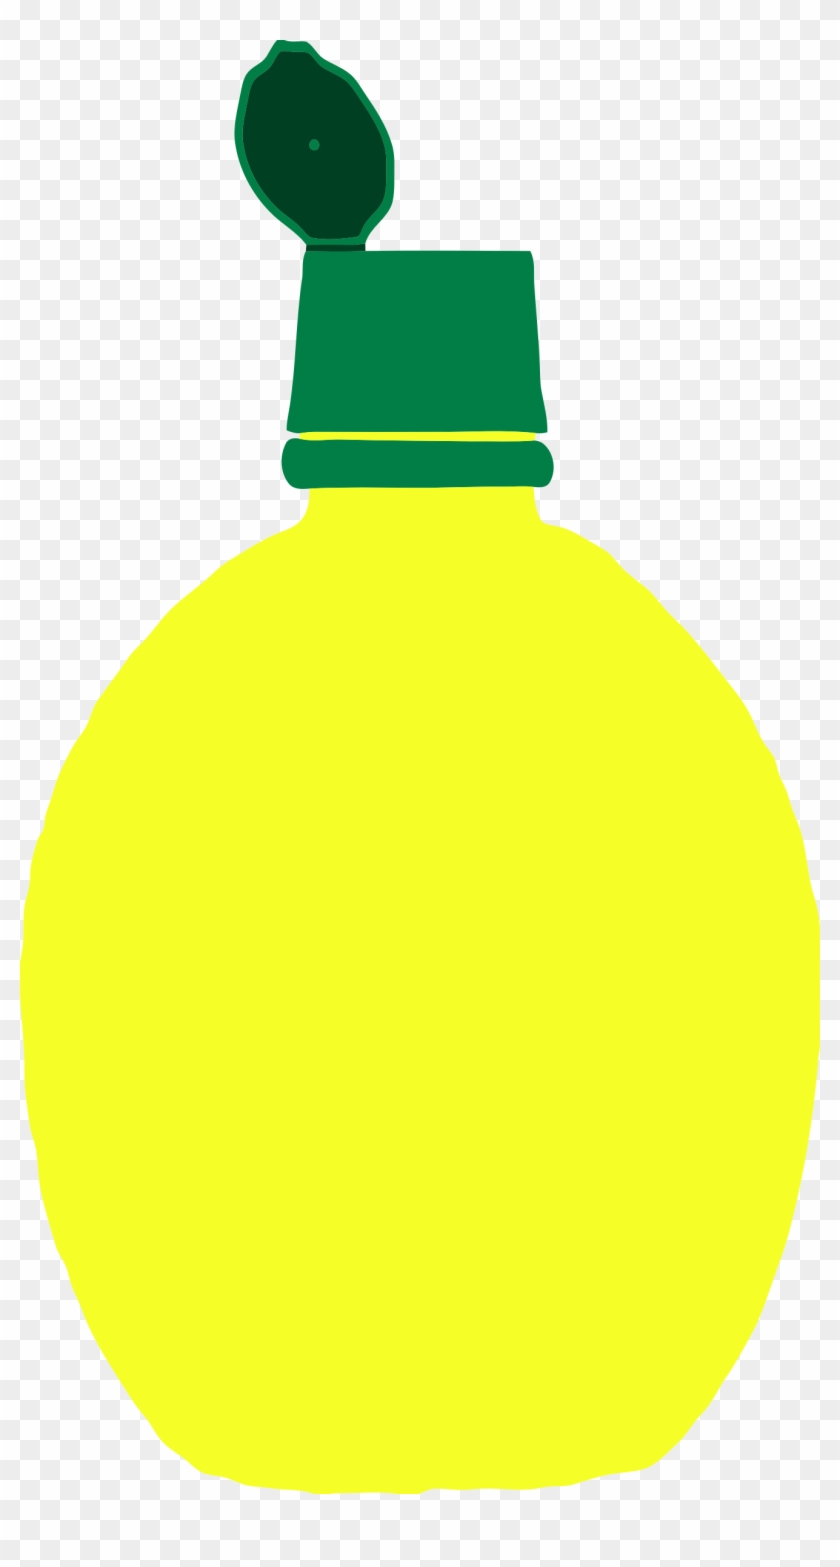 Free Lemon Juice Squeeze - Lemon Juice Clipart #20530